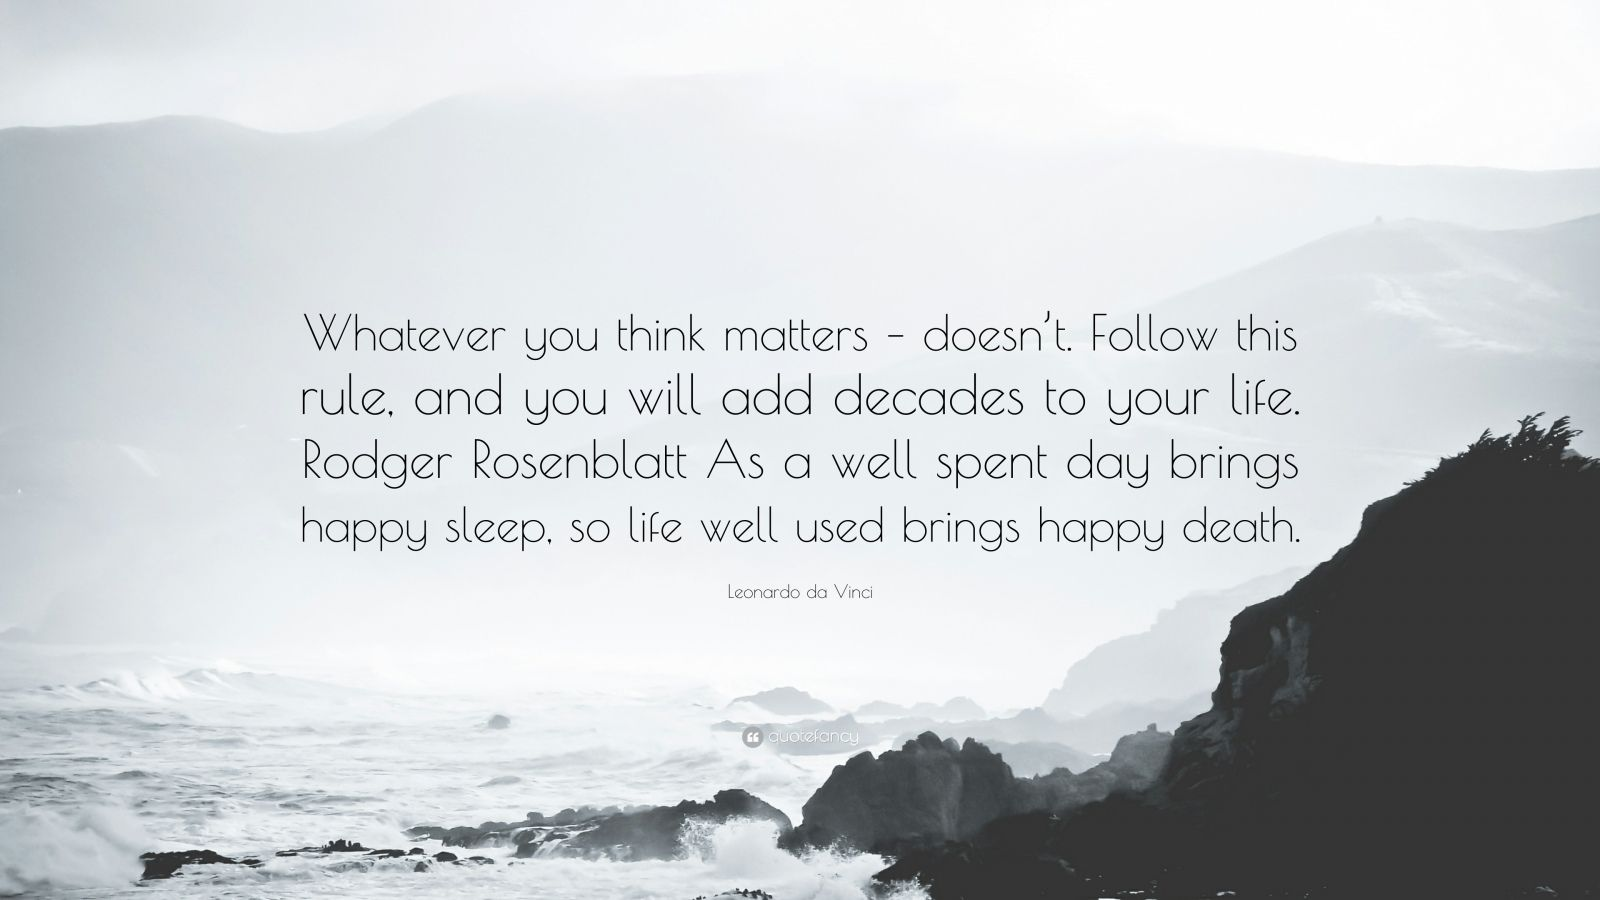 """Leonardo da Vinci Quote: """"Whatever you think matters – doesn't. Follow this rule, and you will add decades to your life. Rodger Rosenblatt As a well spent day brings happy sleep, so life well used brings happy death."""""""